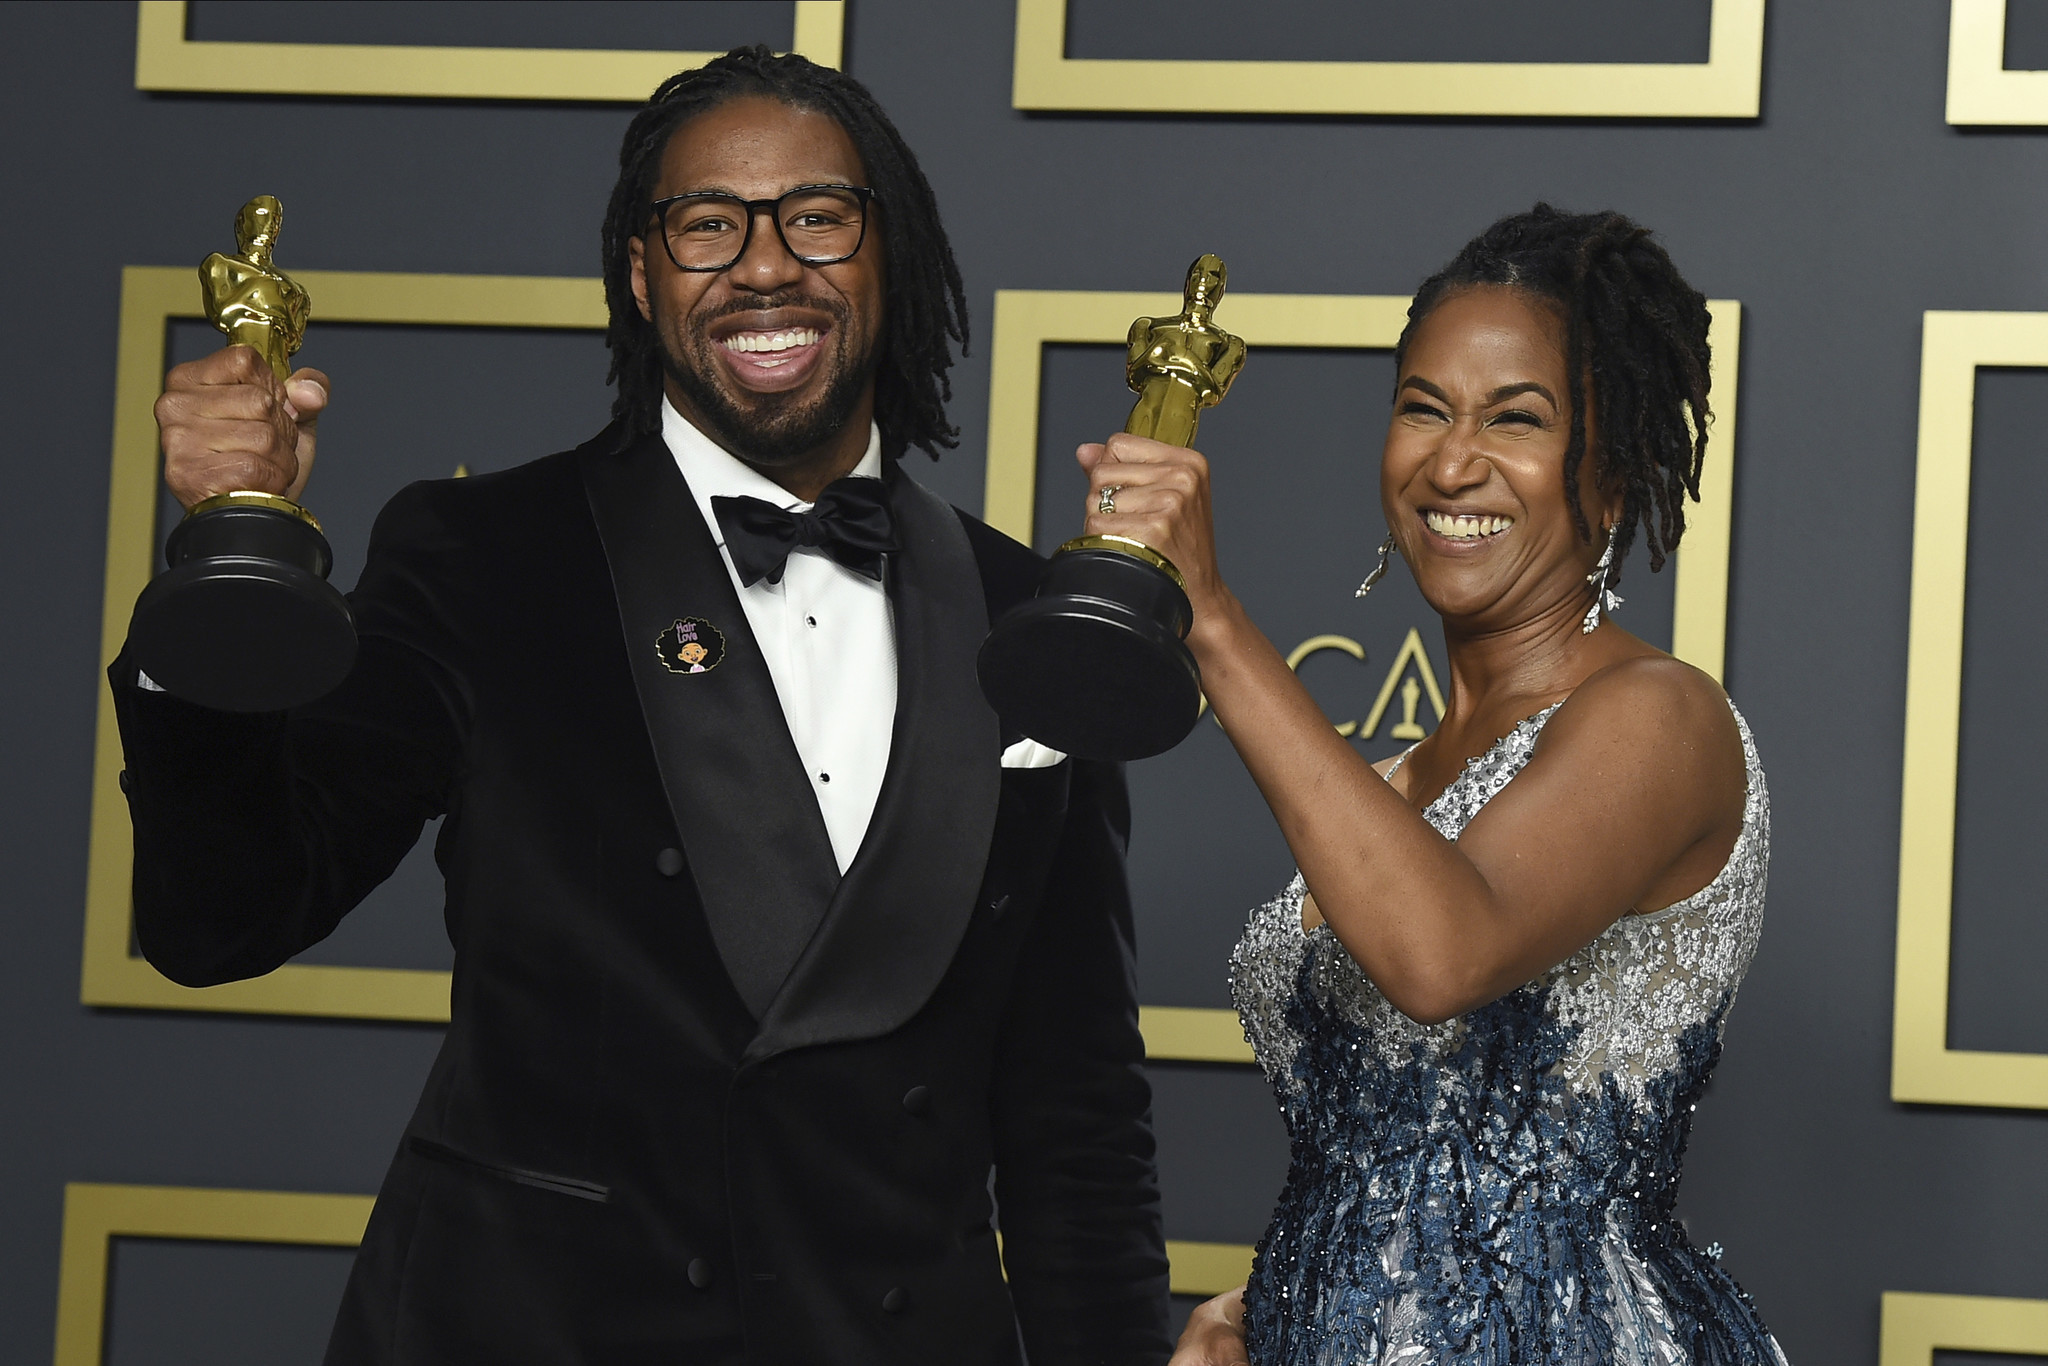 'Hair Love' made history winning Oscar for best animated short